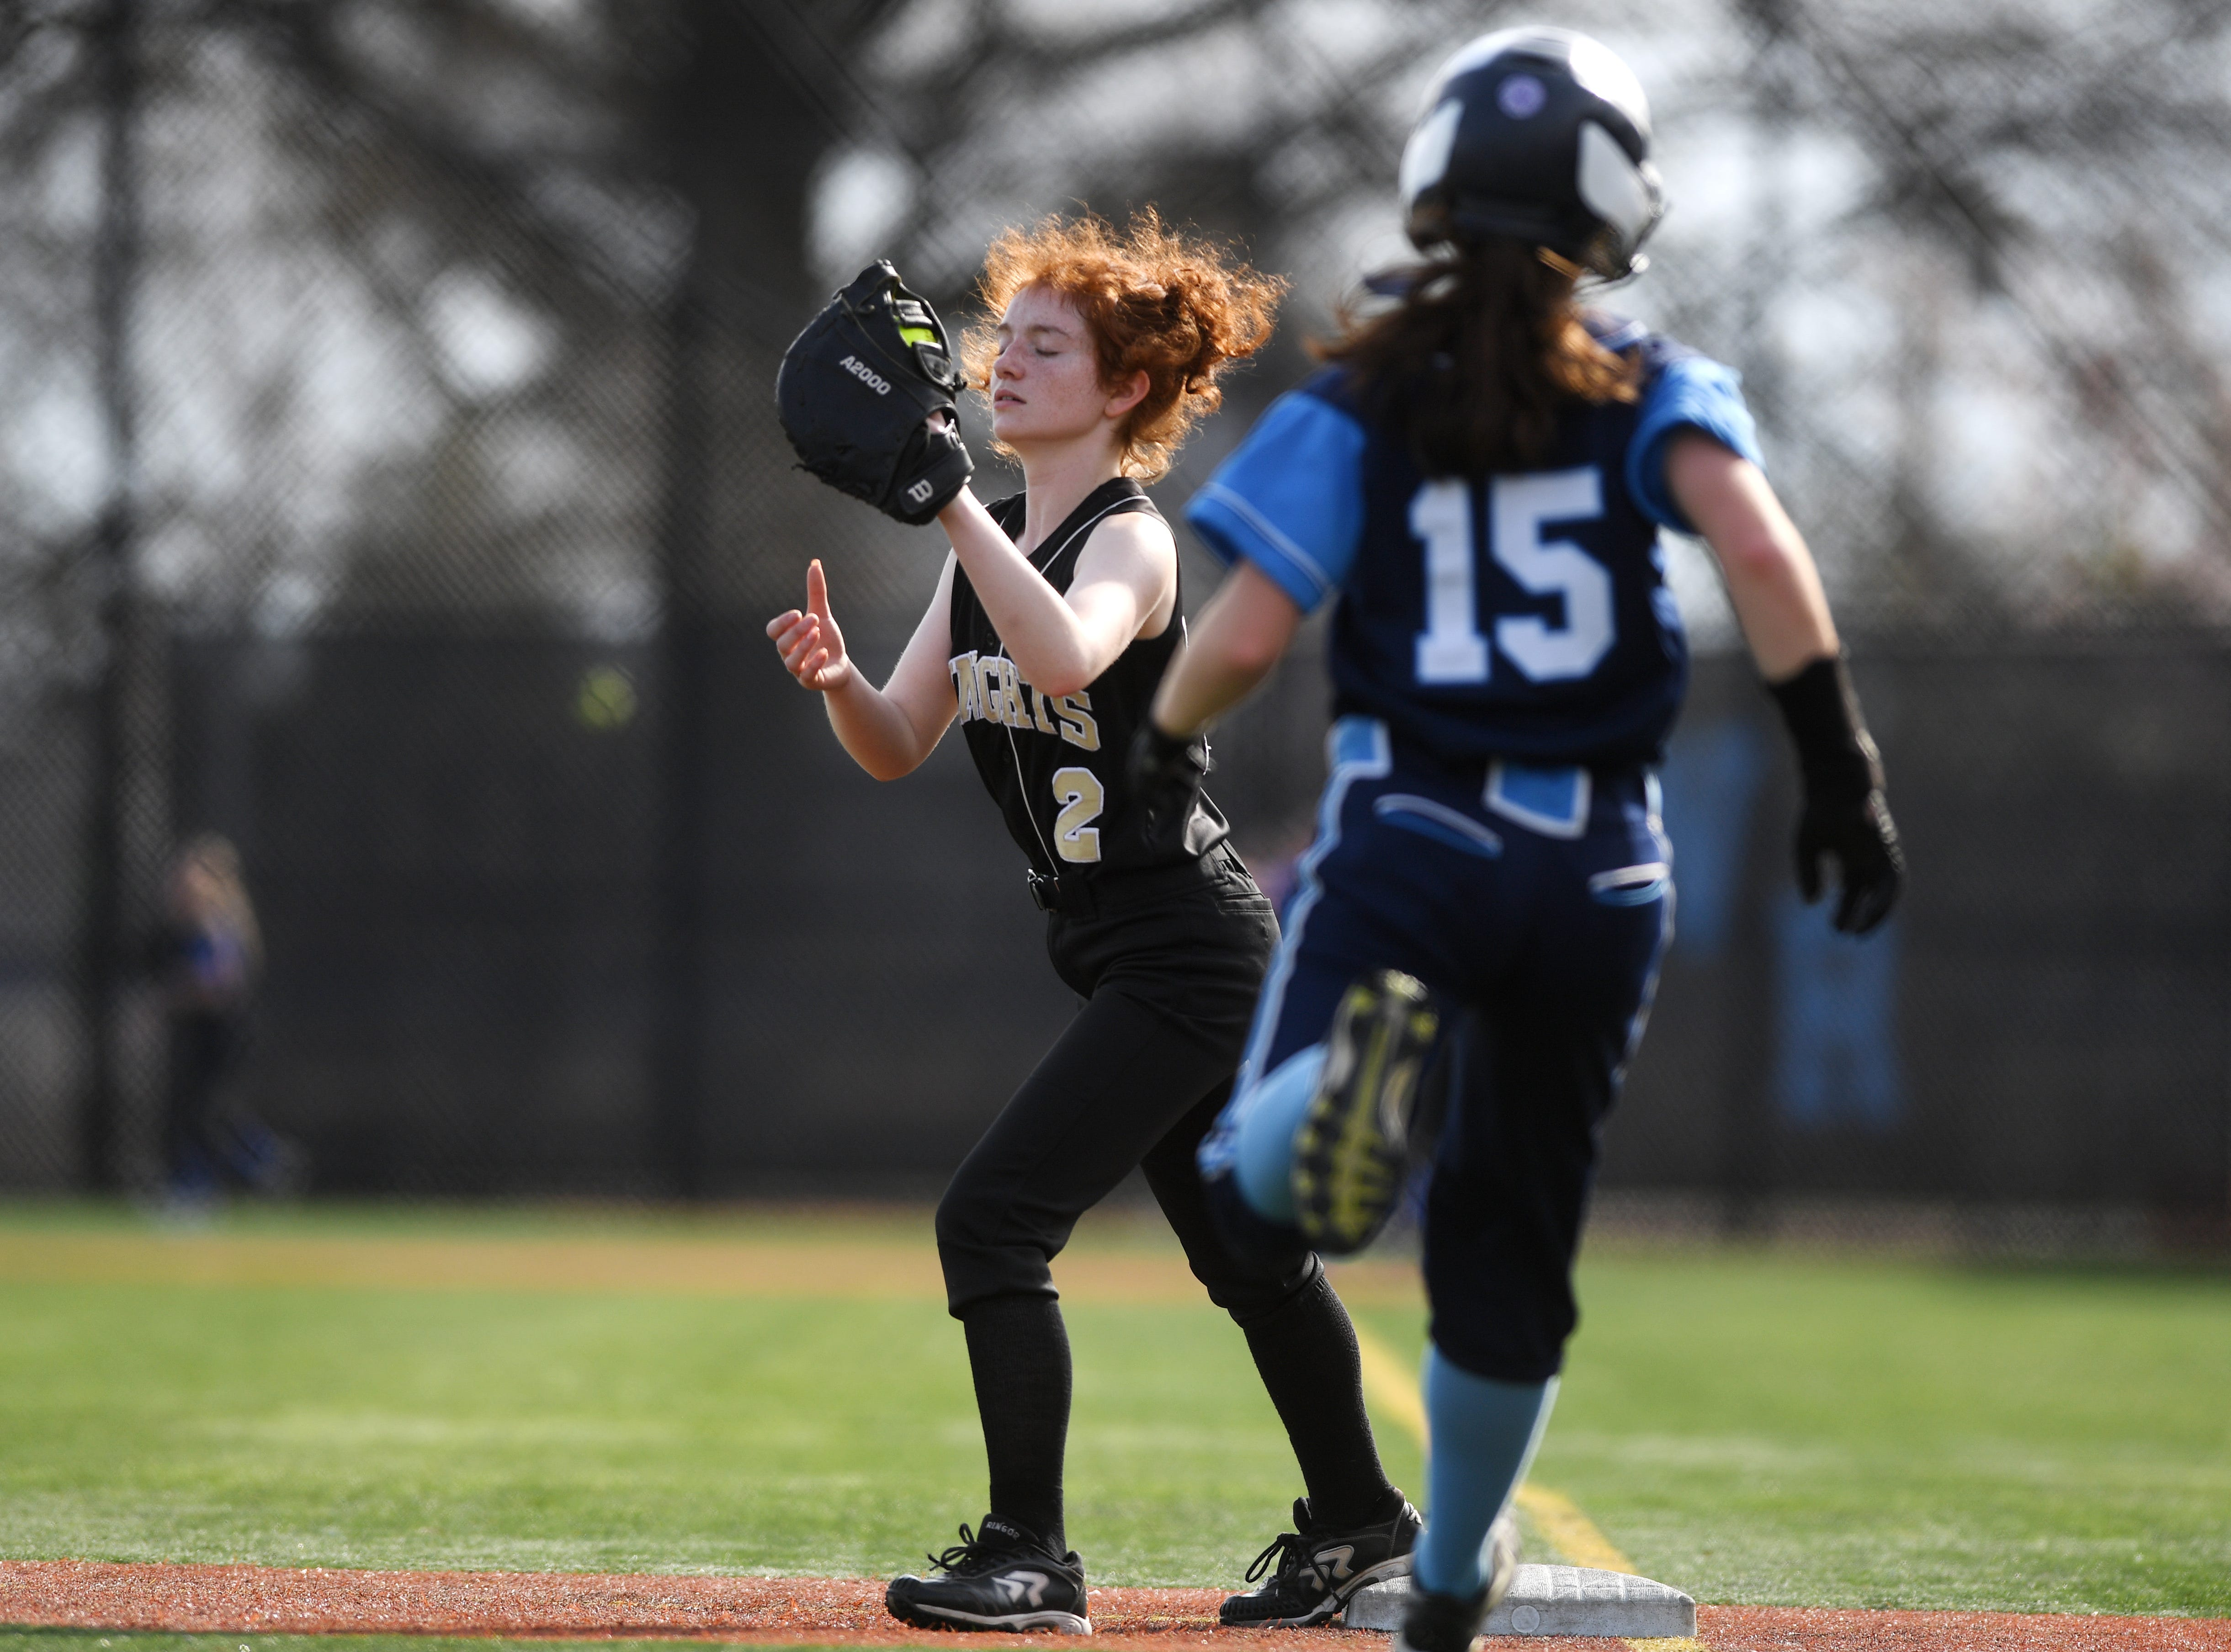 Bergen Tech softball vs. Waldwick in the Donna Ricker Tournament at Wood-Ridge High School on Saturday, April 13, 2019. BT #Casey Calabrese gets the out at first.